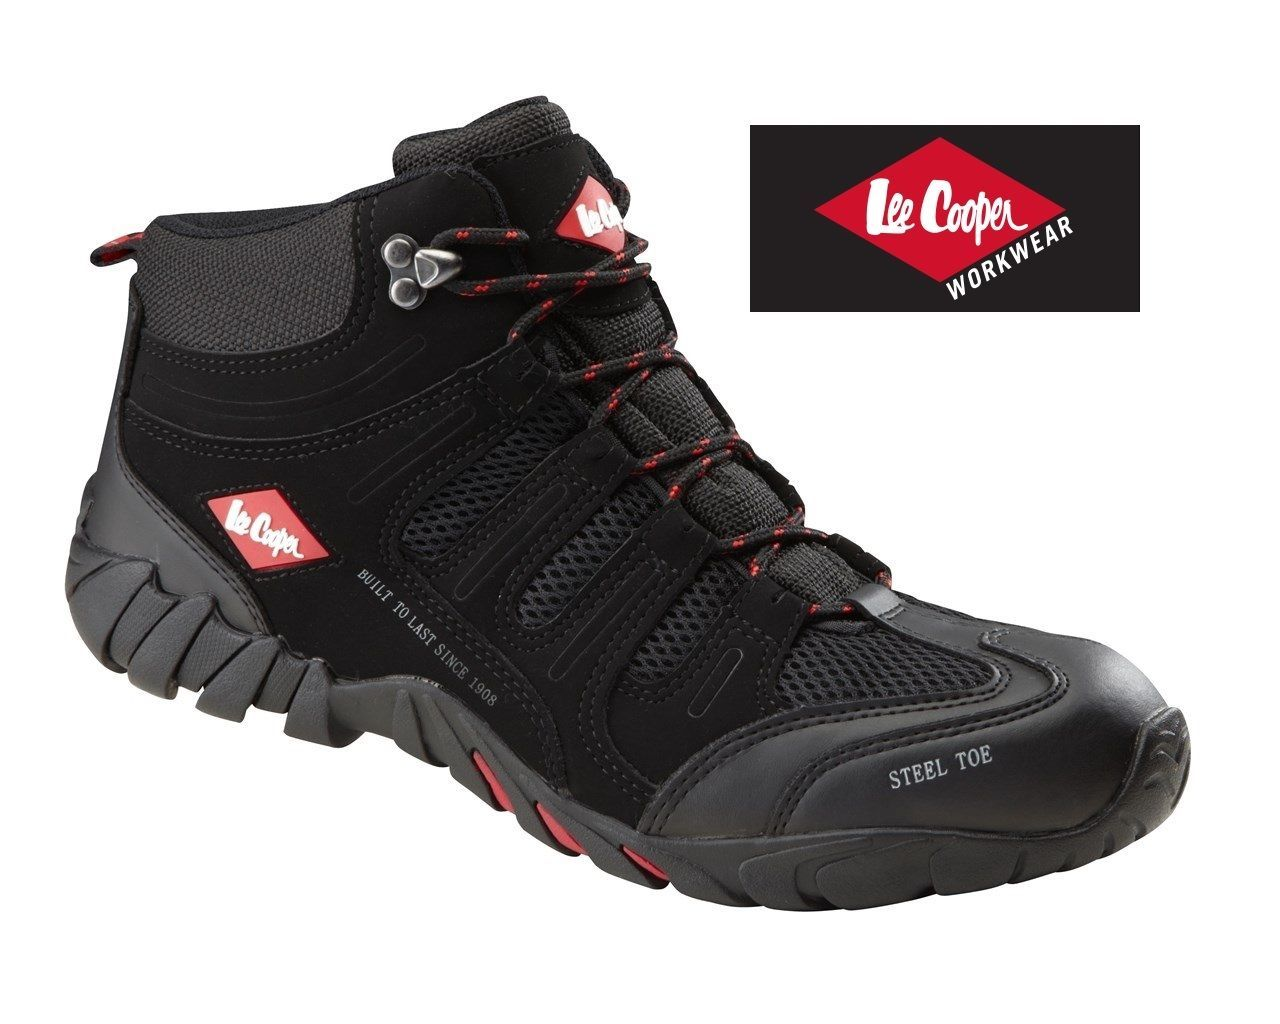 258fd6dc9 New Mens Lee Cooper Steel Toe Cap Safety Boots Trainers Workwear LC020 UK  6-12 | eBay